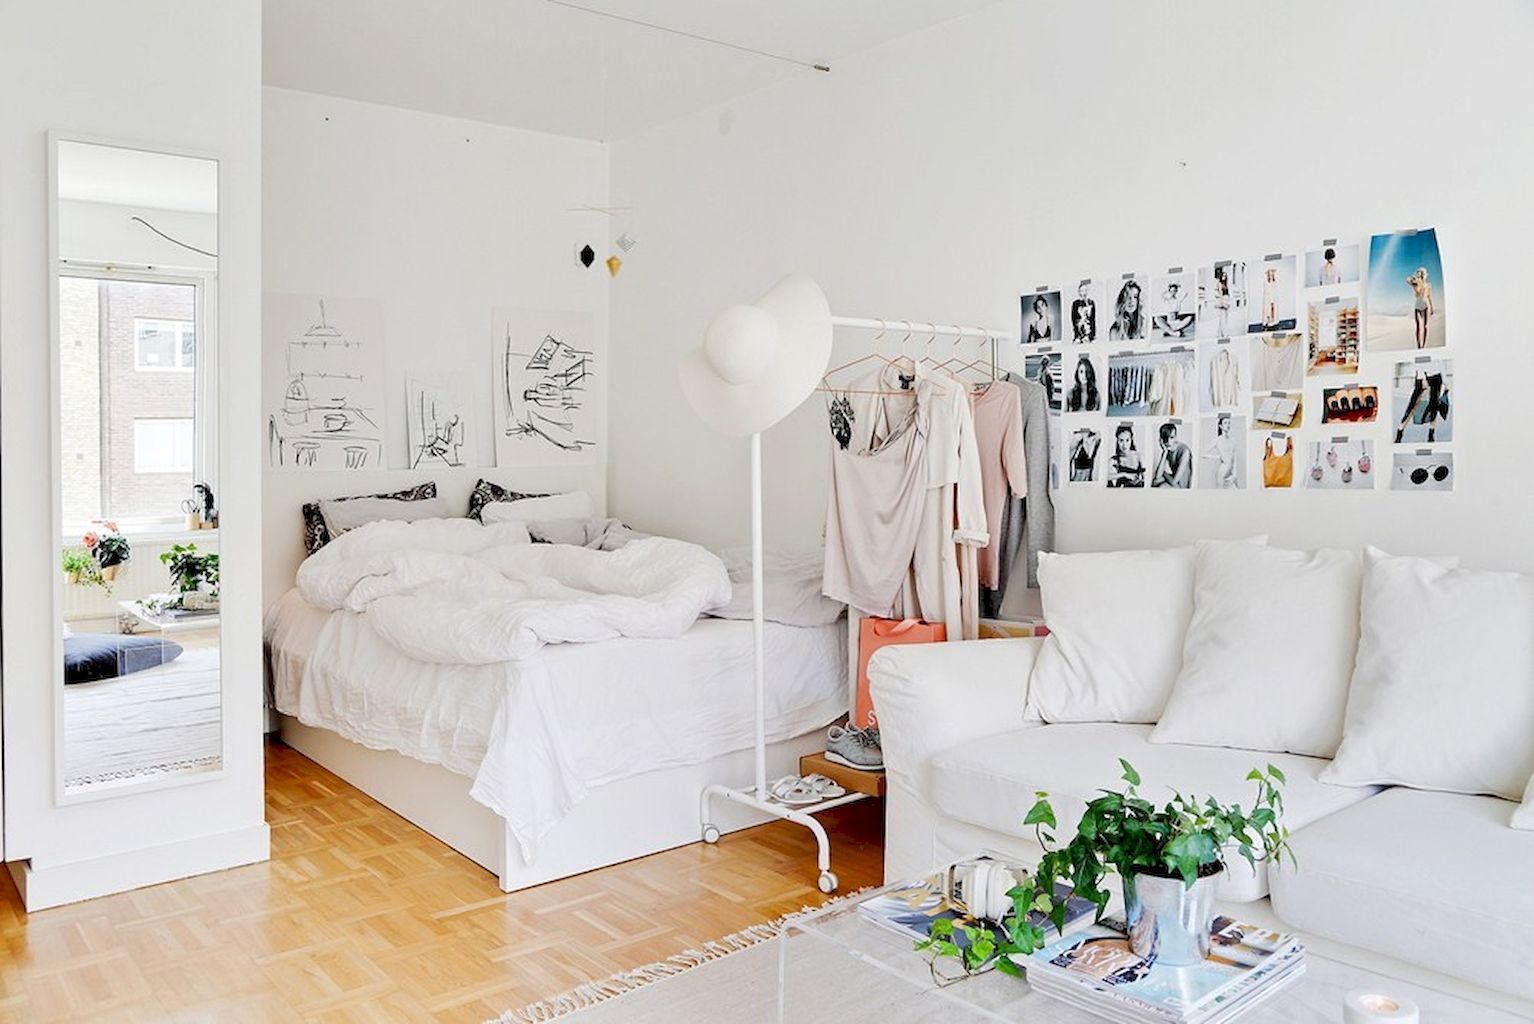 65 Smart and Creative Small Apartment Decorating